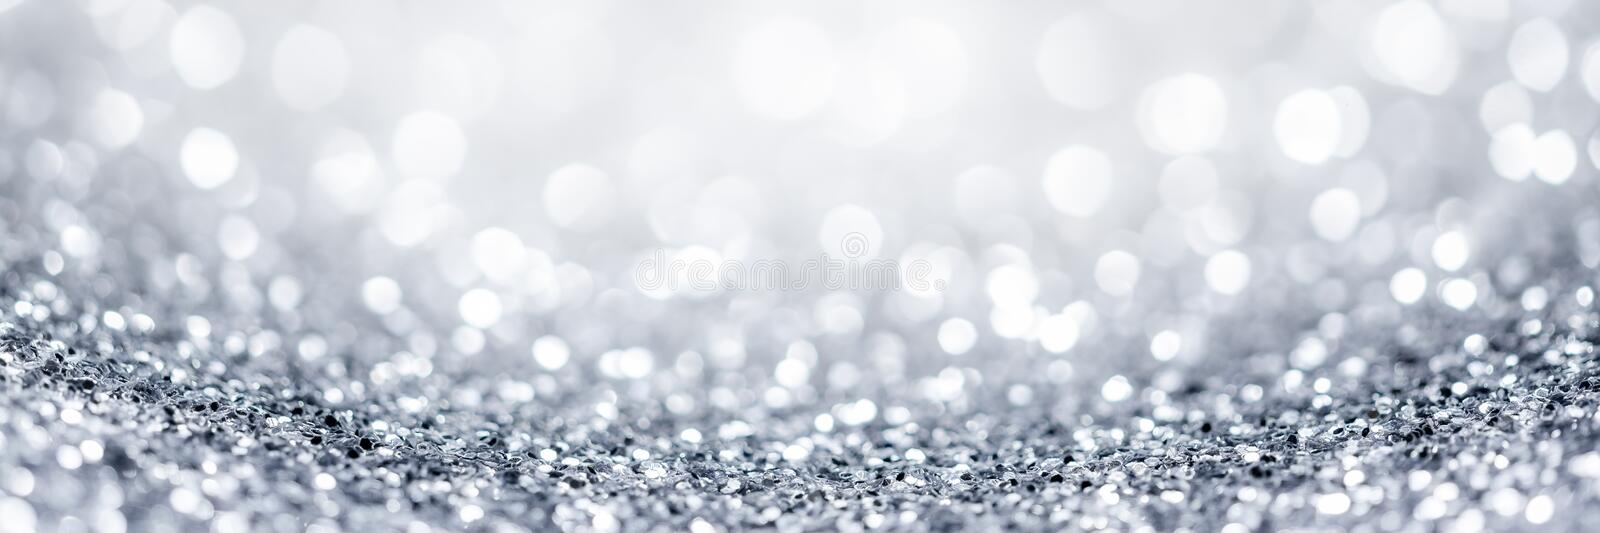 Silver Glitter Background. Abstract  Holiday Background With Silver Glitter And Bokeh Balls stock photography